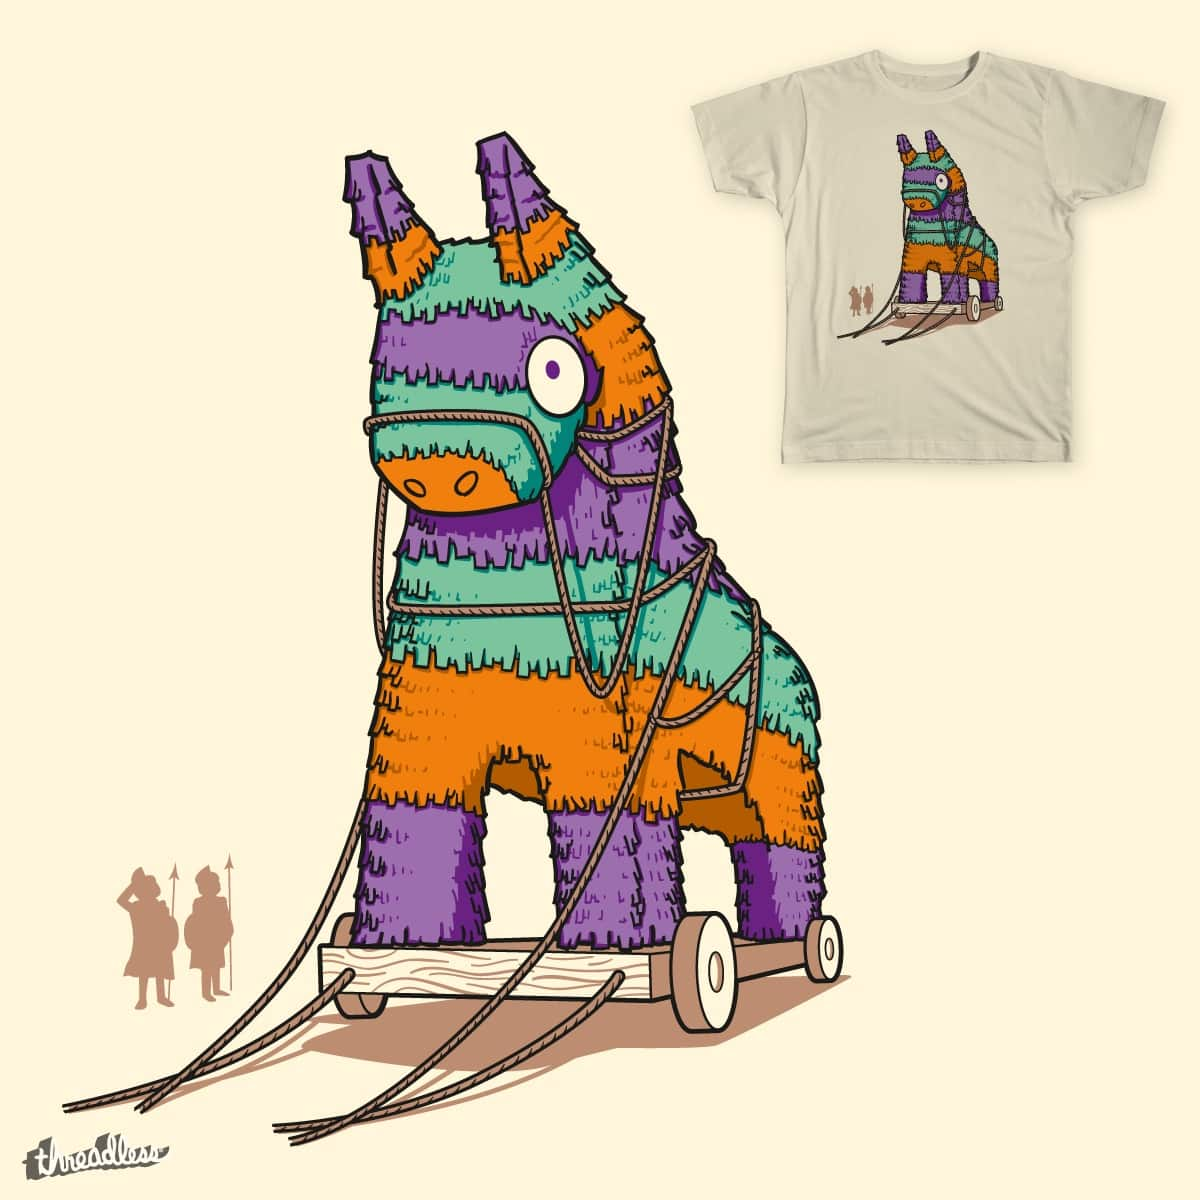 I Wonder What's Inside... by westhill on Threadless